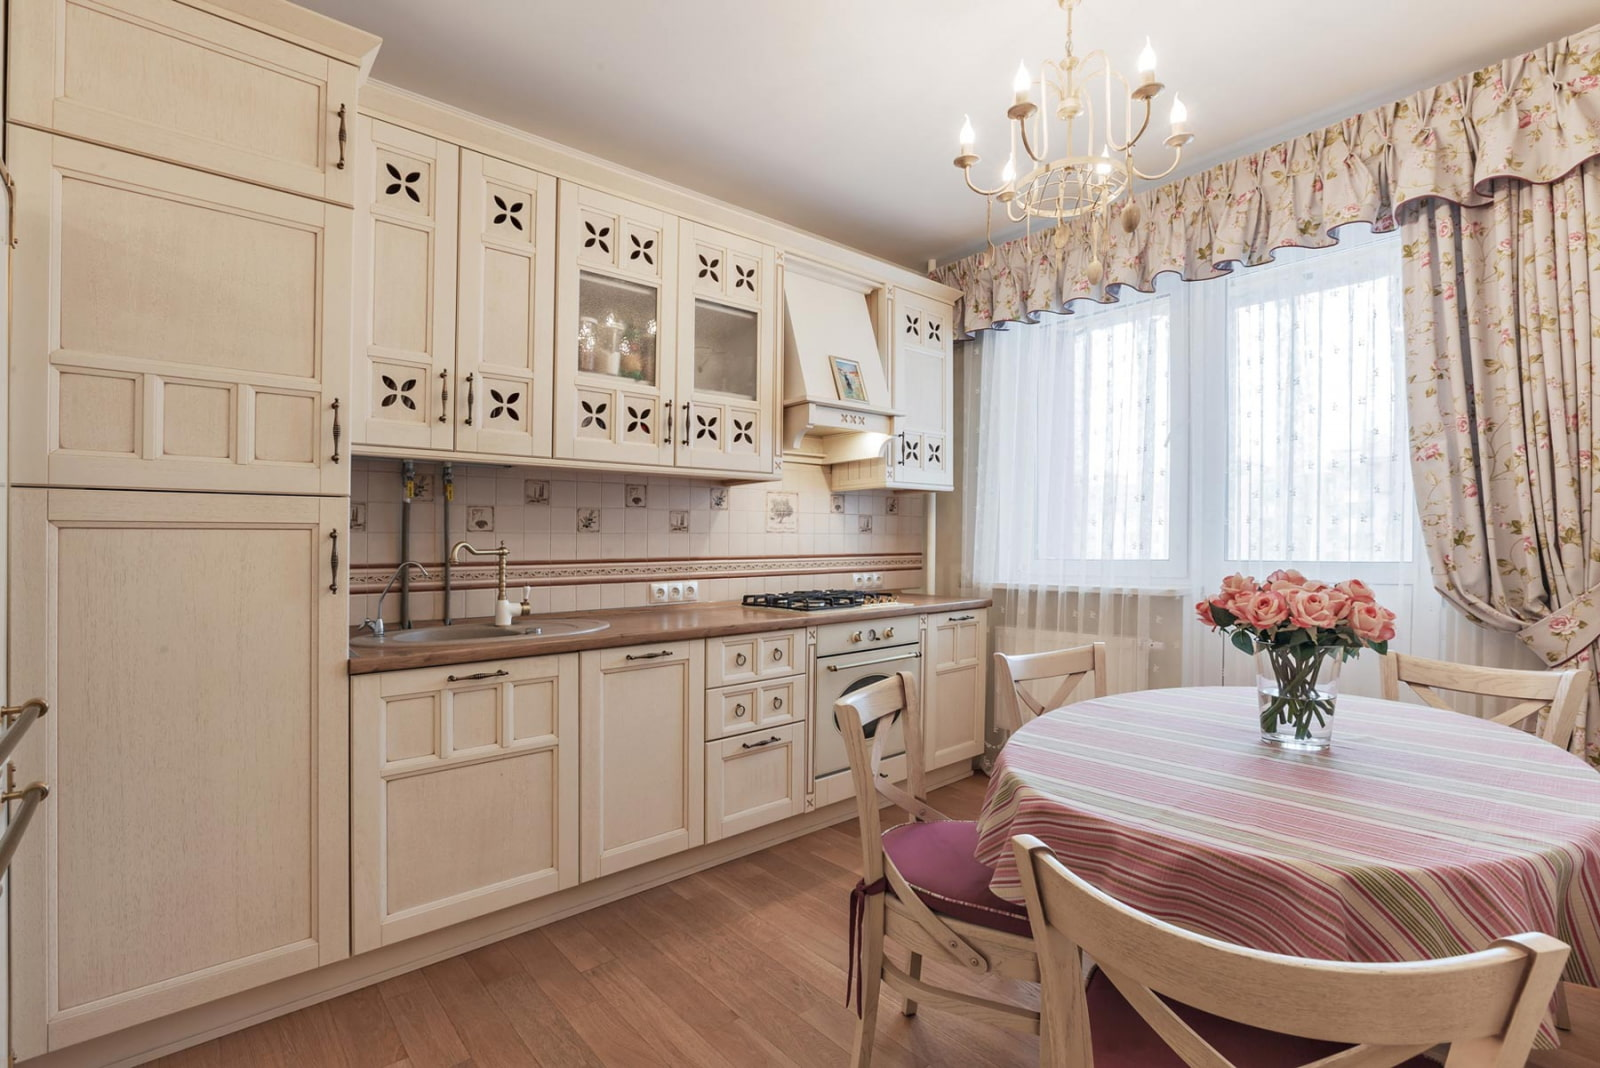 Provence Style Kitchen Interior Design for Cozy Life with Taste of Classics. Wooden floor and white neat designed kitchen furniture set